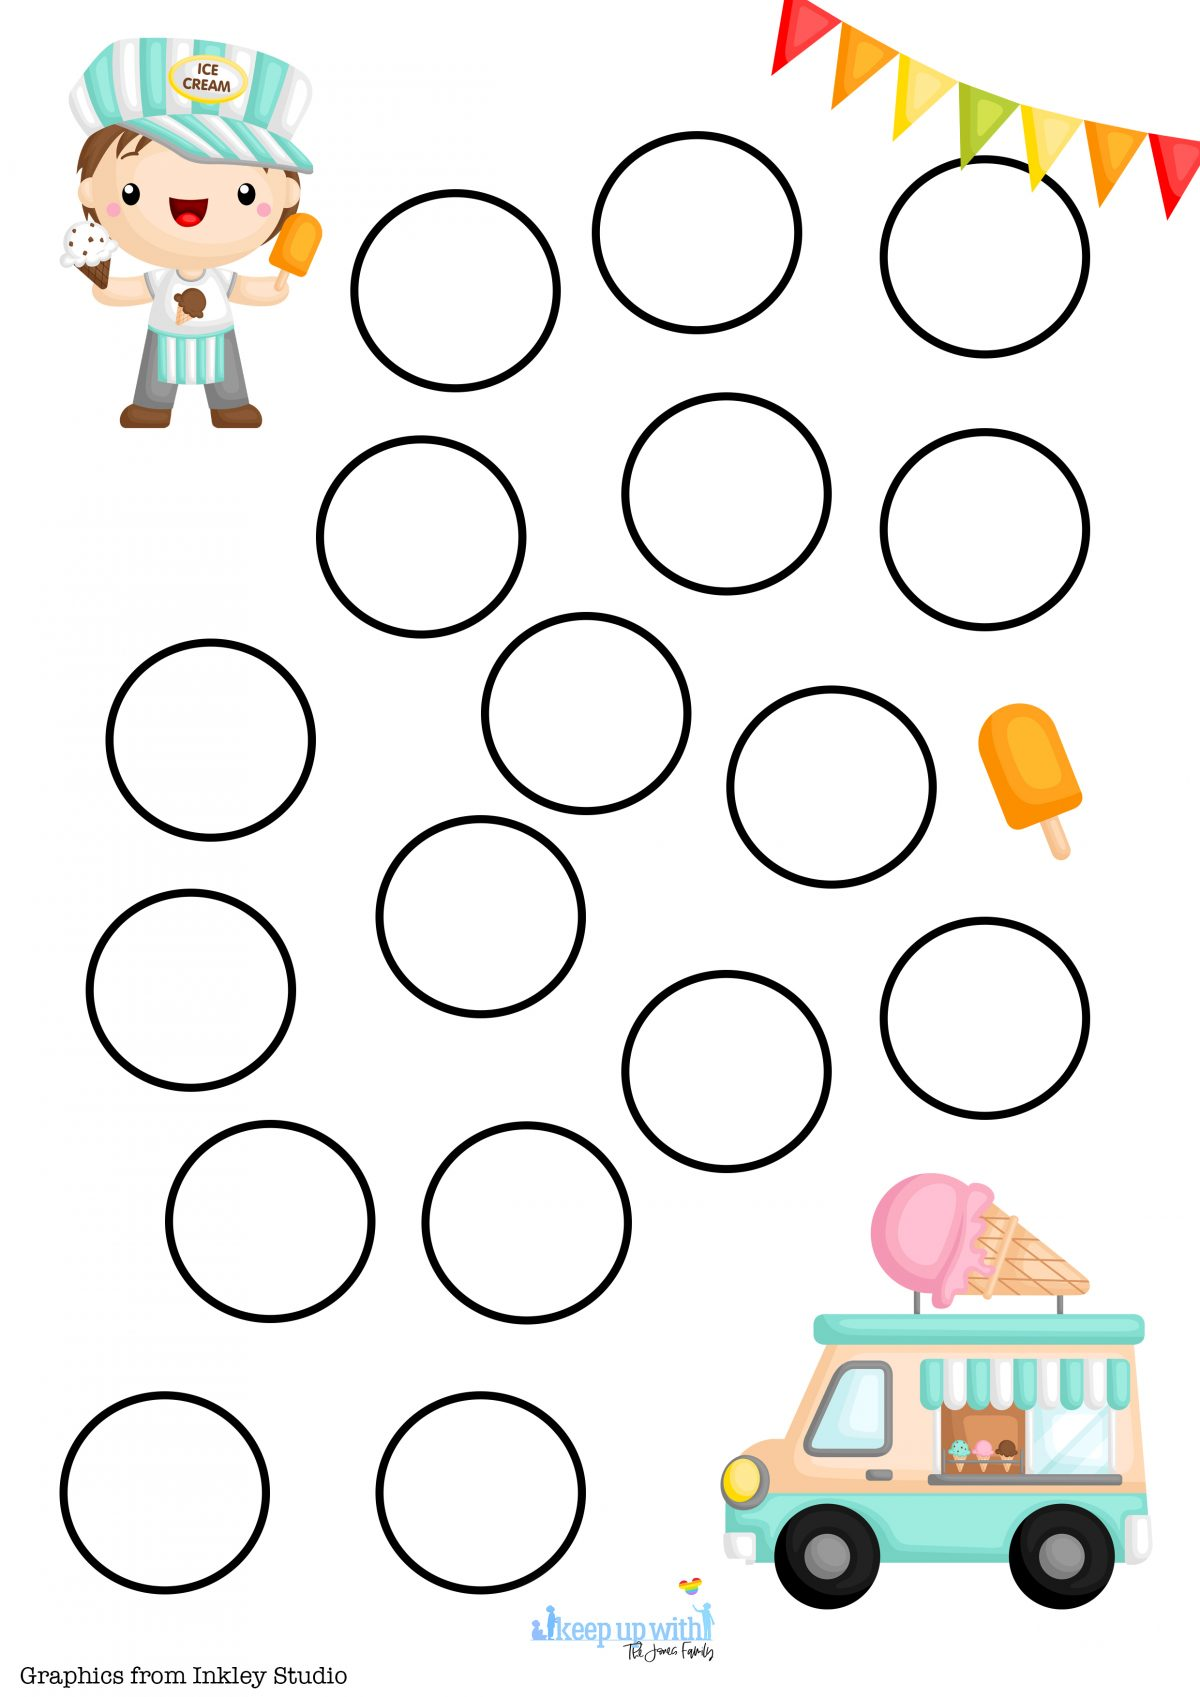 Simple and fun mental arithmetic template for addition and multiplication games.